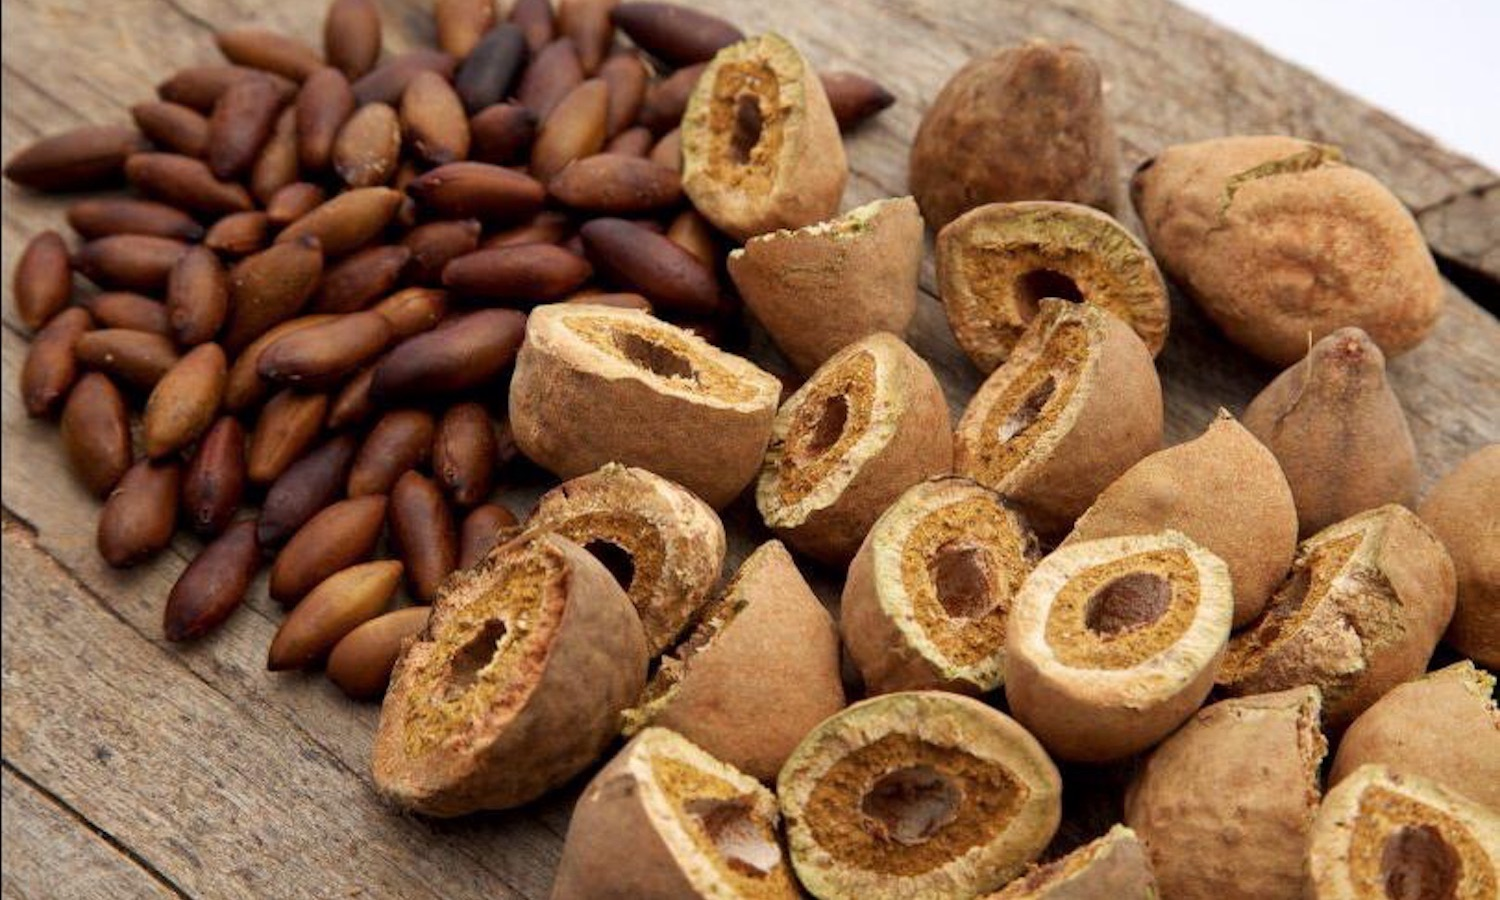 Regenature, a Brazillian health foods importer and exporter, wants to regenerate the Cerrado by popularizing the native Baru nut